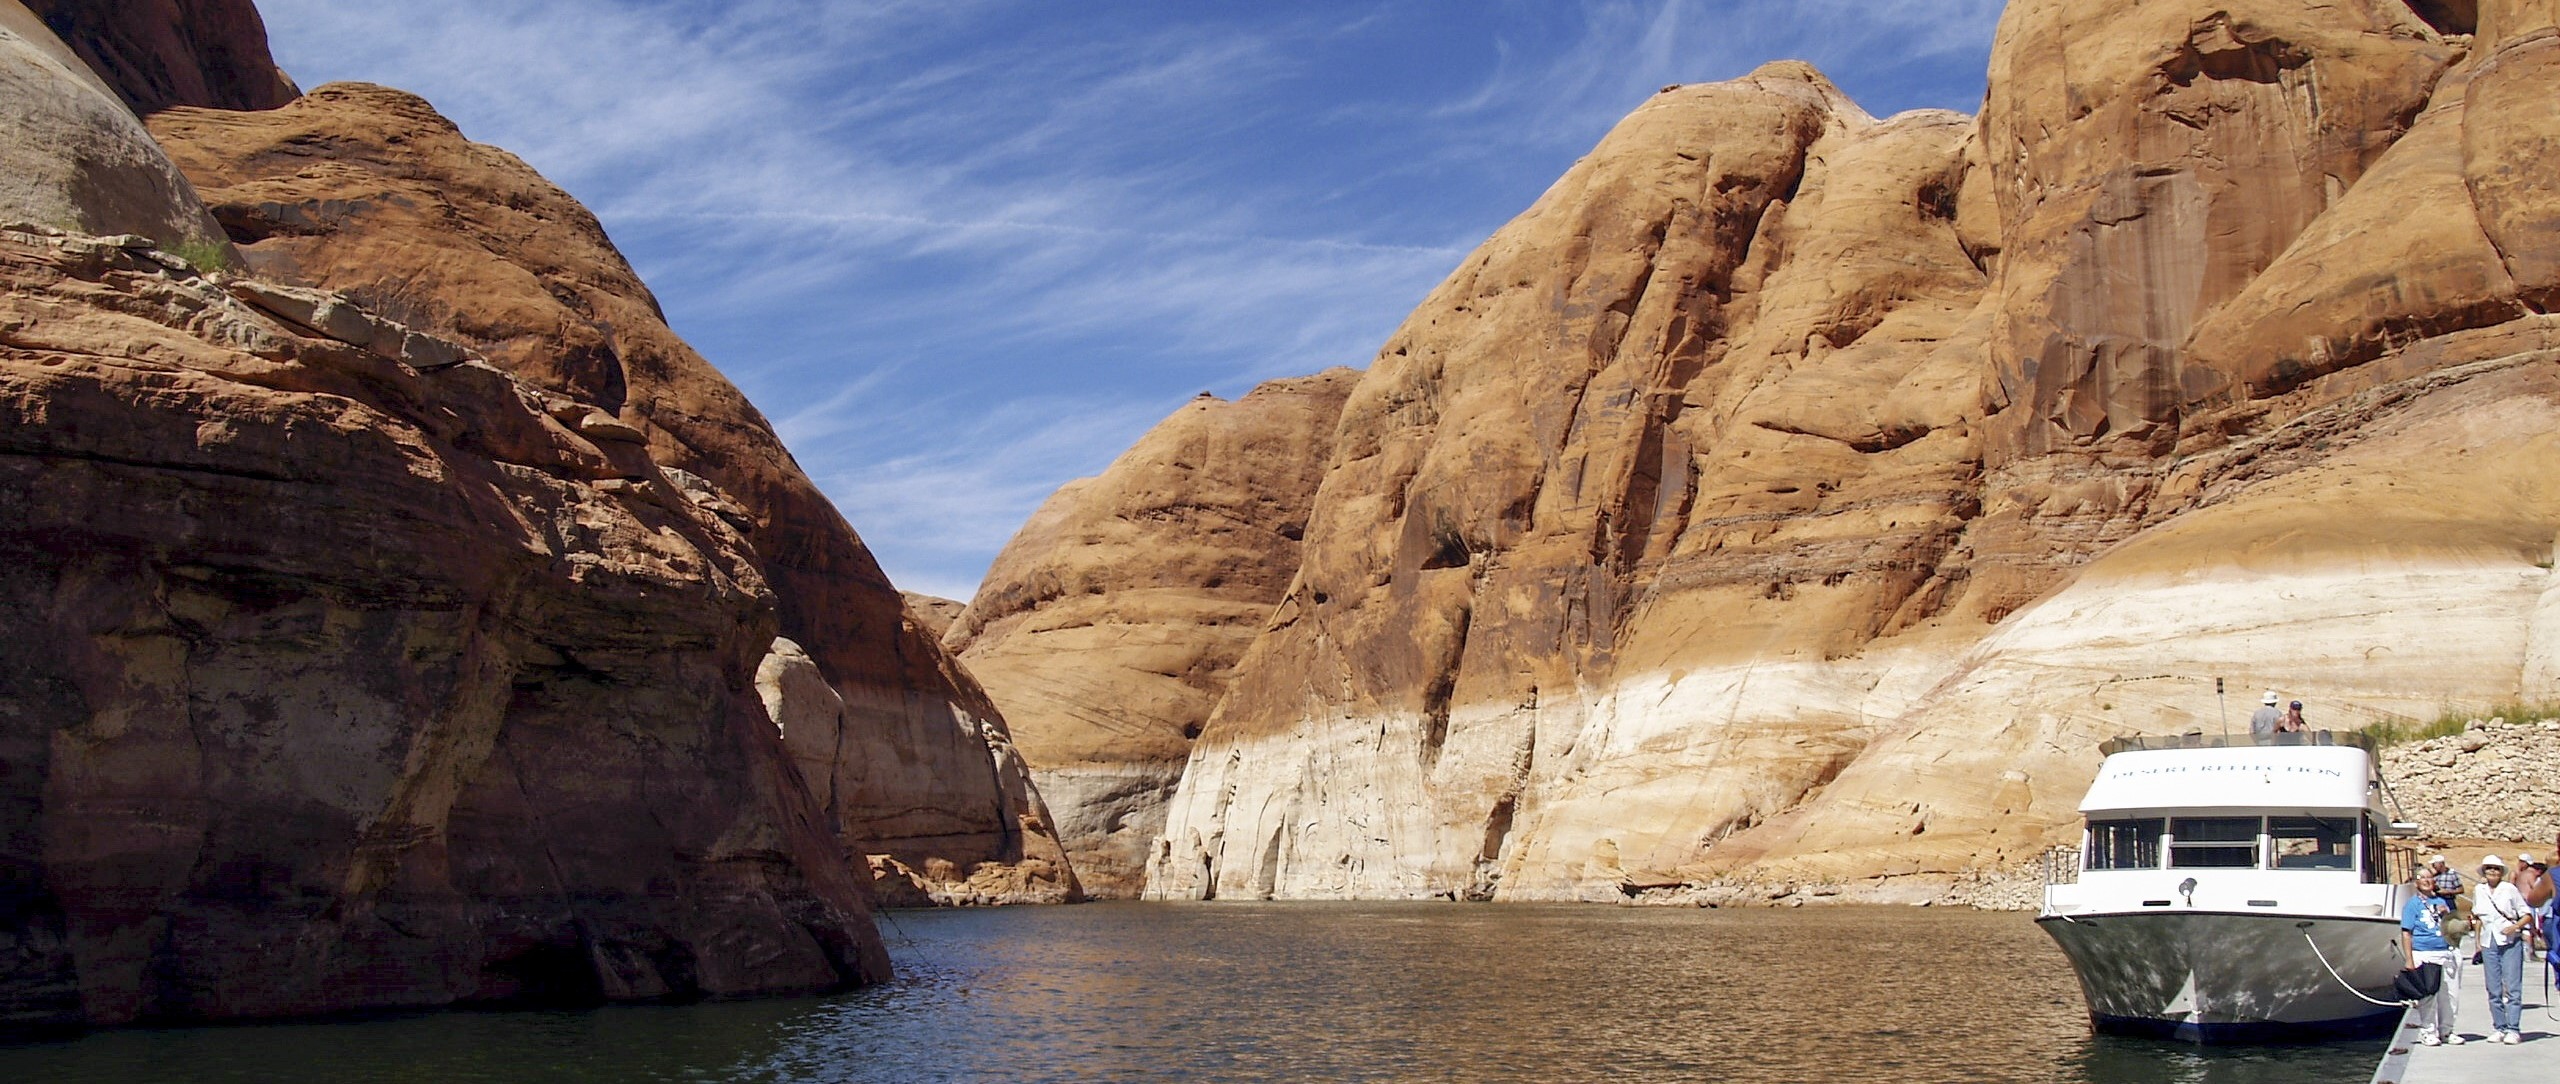 Boat Ride in Lake Powell, Arizona | Breast Cancer Car Donations